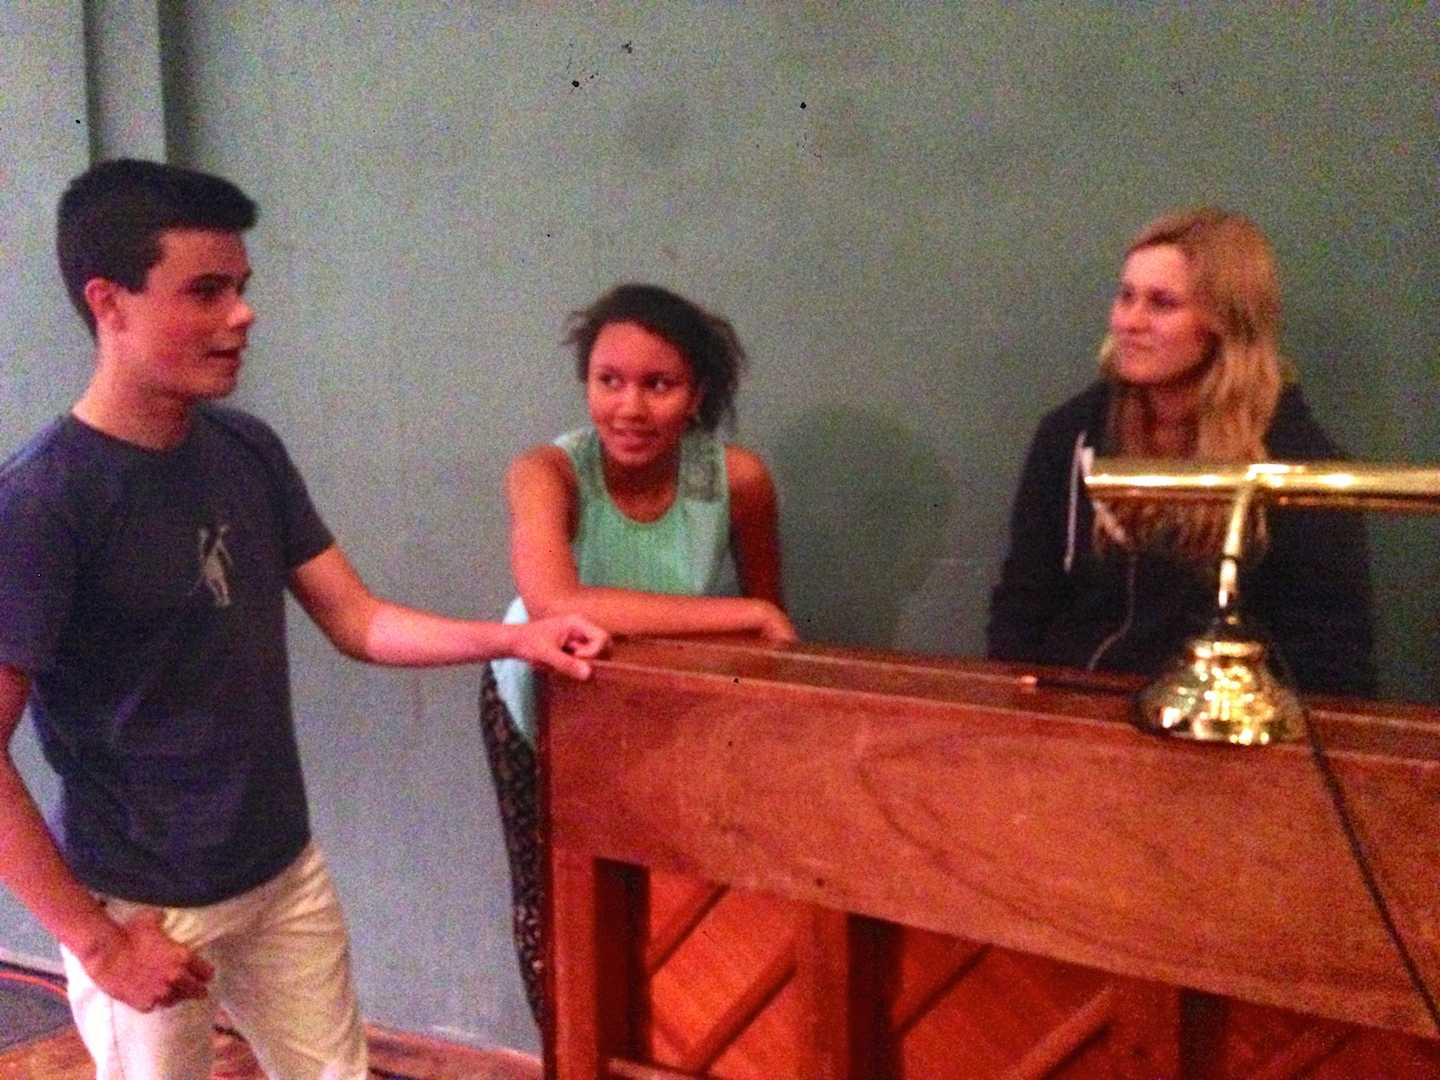 Sophomores Johnny Rohrbach and Nadia Leinhos and junior Lana Graves rehearse for an Paly production. They will be performing at the 2015 California State Thespian Festival later this month.